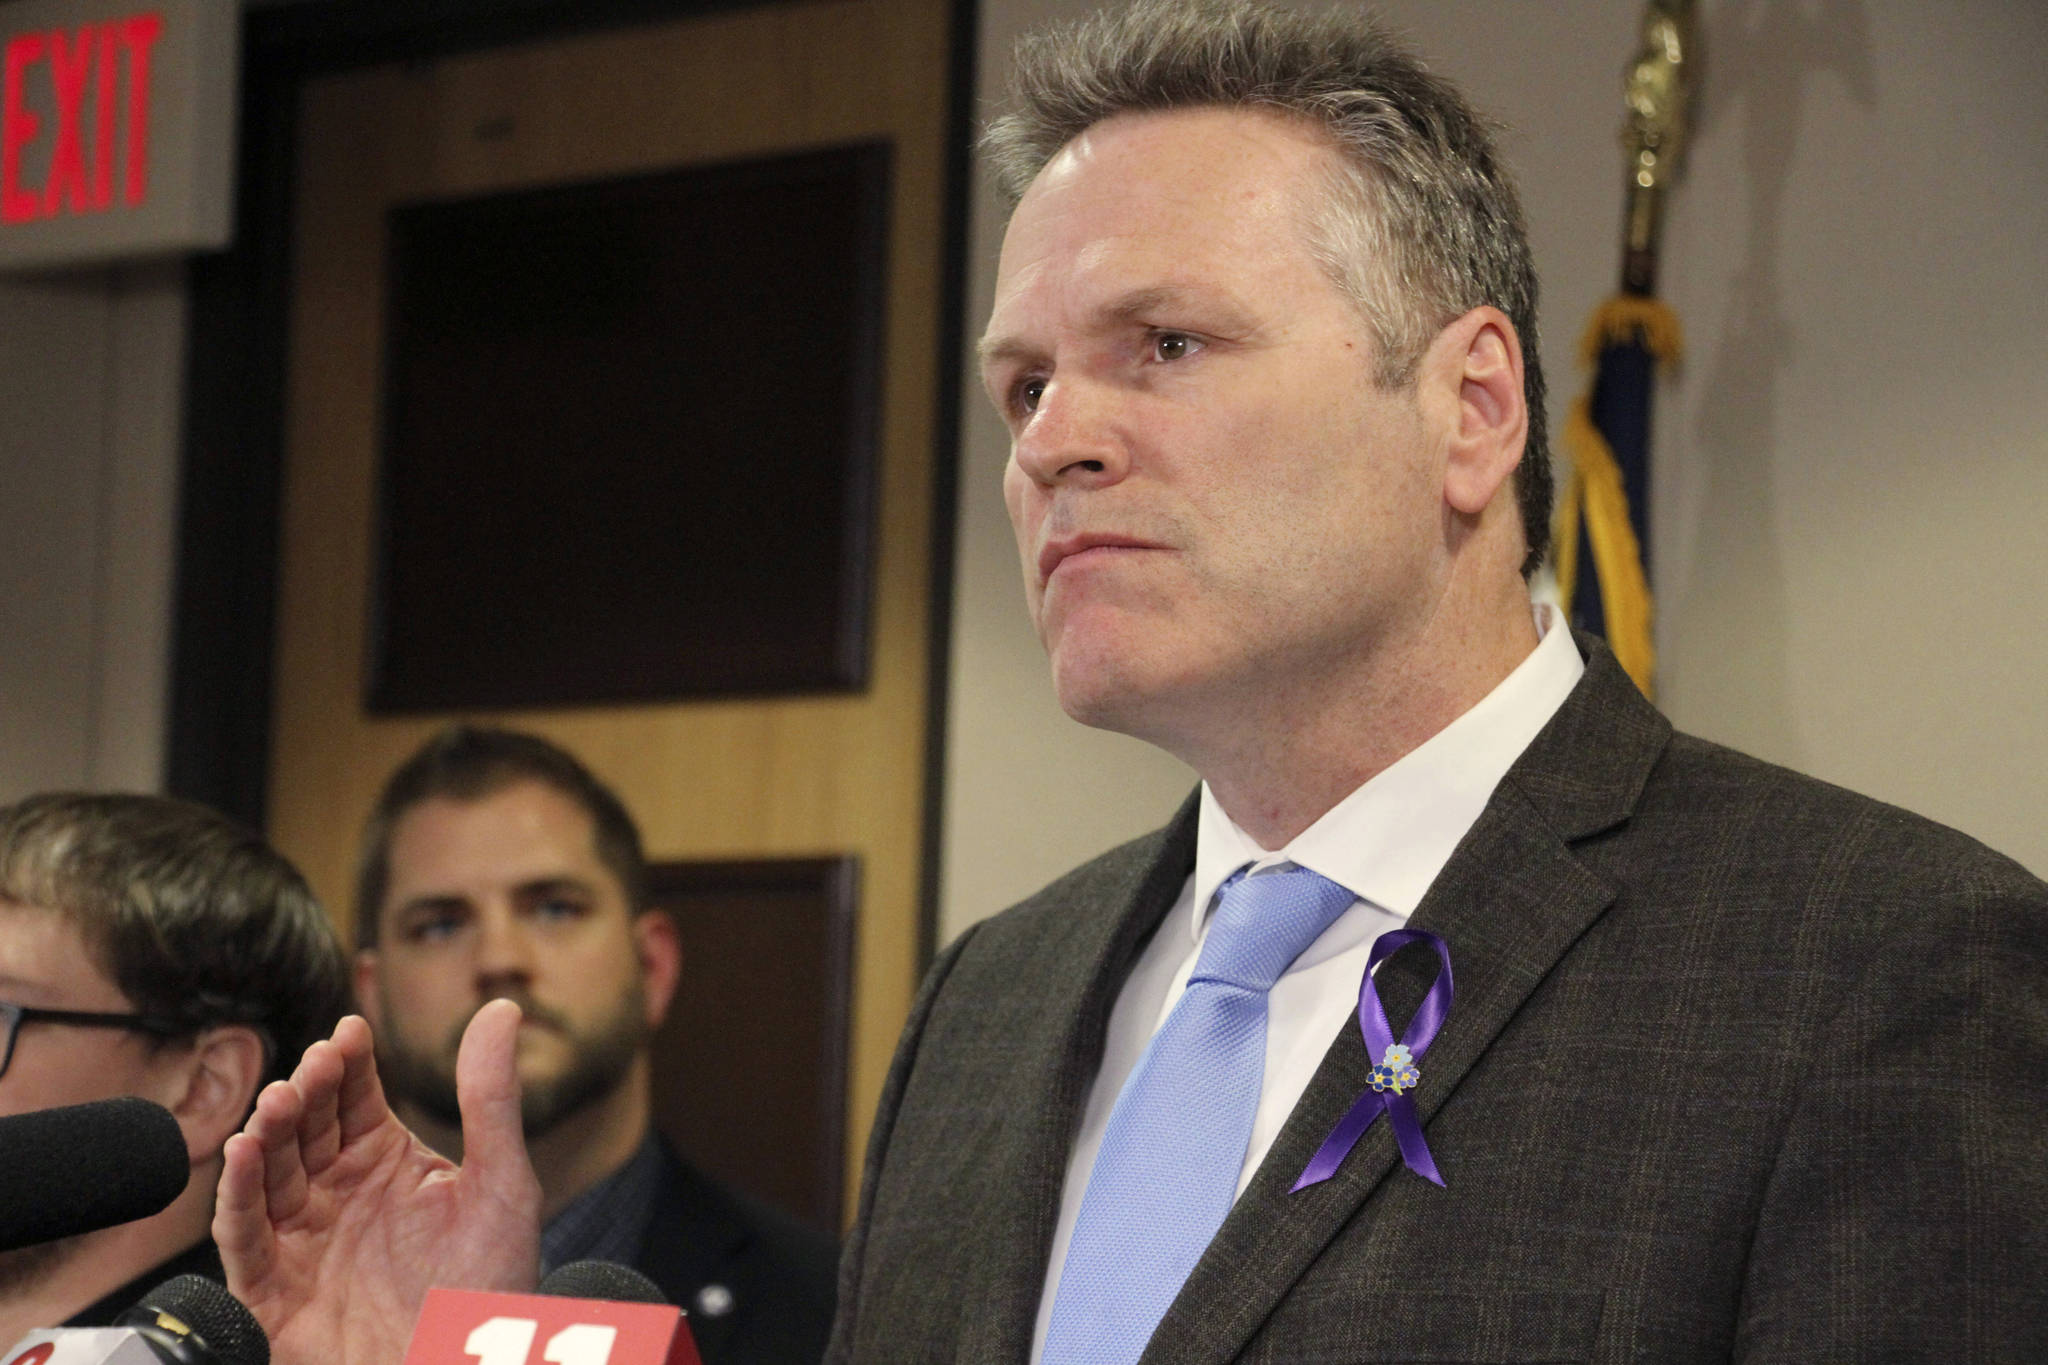 In this March 12, 2020 file photo, Alaska Gov. Mike Dunleavy speaks during a news conference in Anchorage, Alaska. Dunleavy faces criticism for his handling of COVID-19, from those who think he's not doing enough to address rising case counts to those who think he's been overreaching. (AP Photo/Mark Thiessen, File)